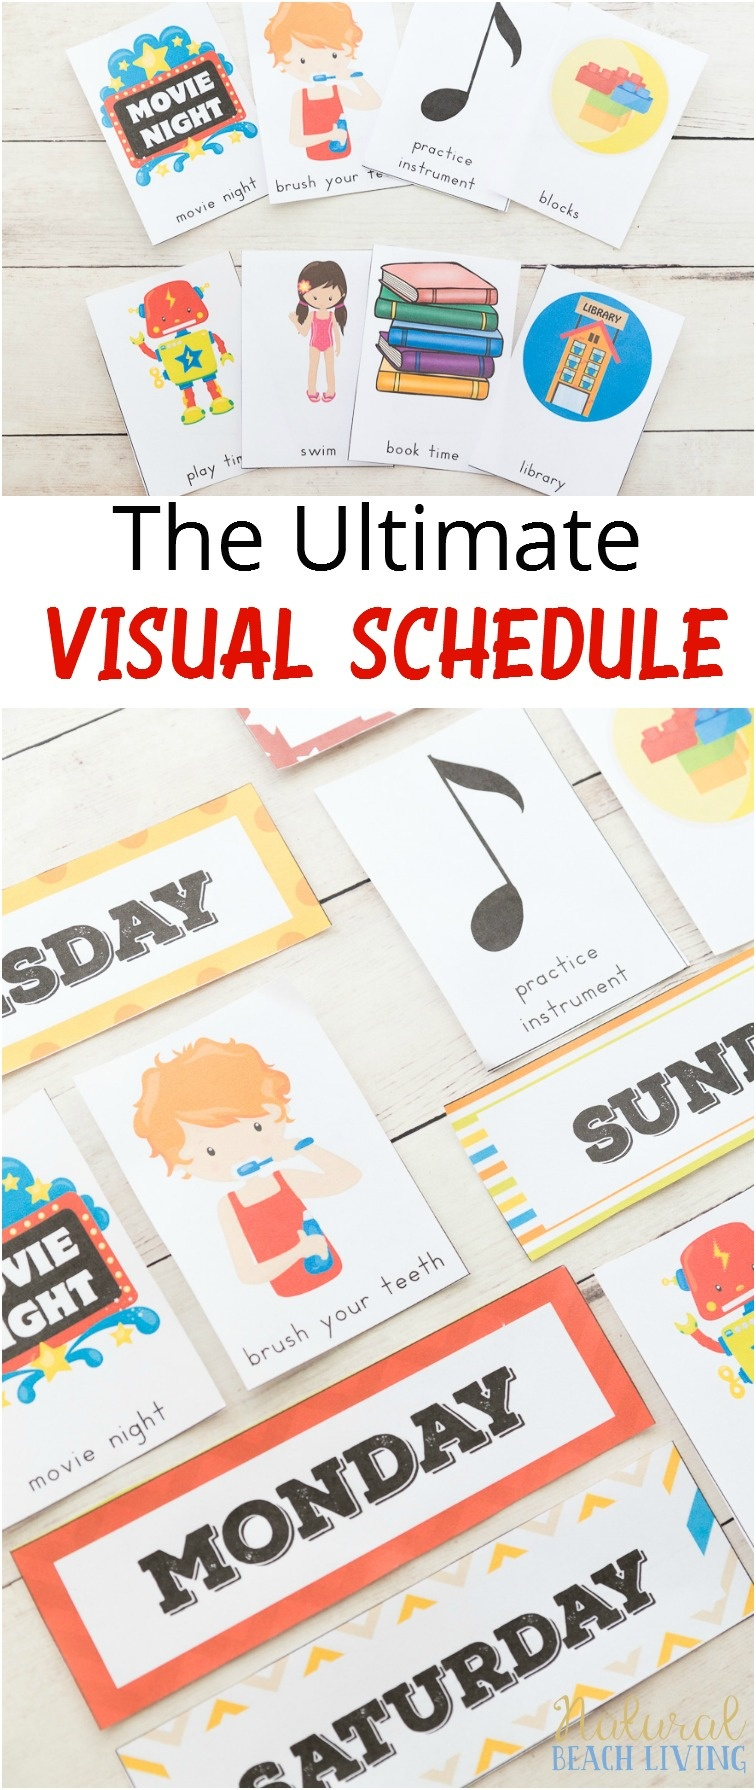 Extra Daily Visual Schedule Cards Free Printables - Natural Beach Living - Free Printable Visual Schedule For Classroom